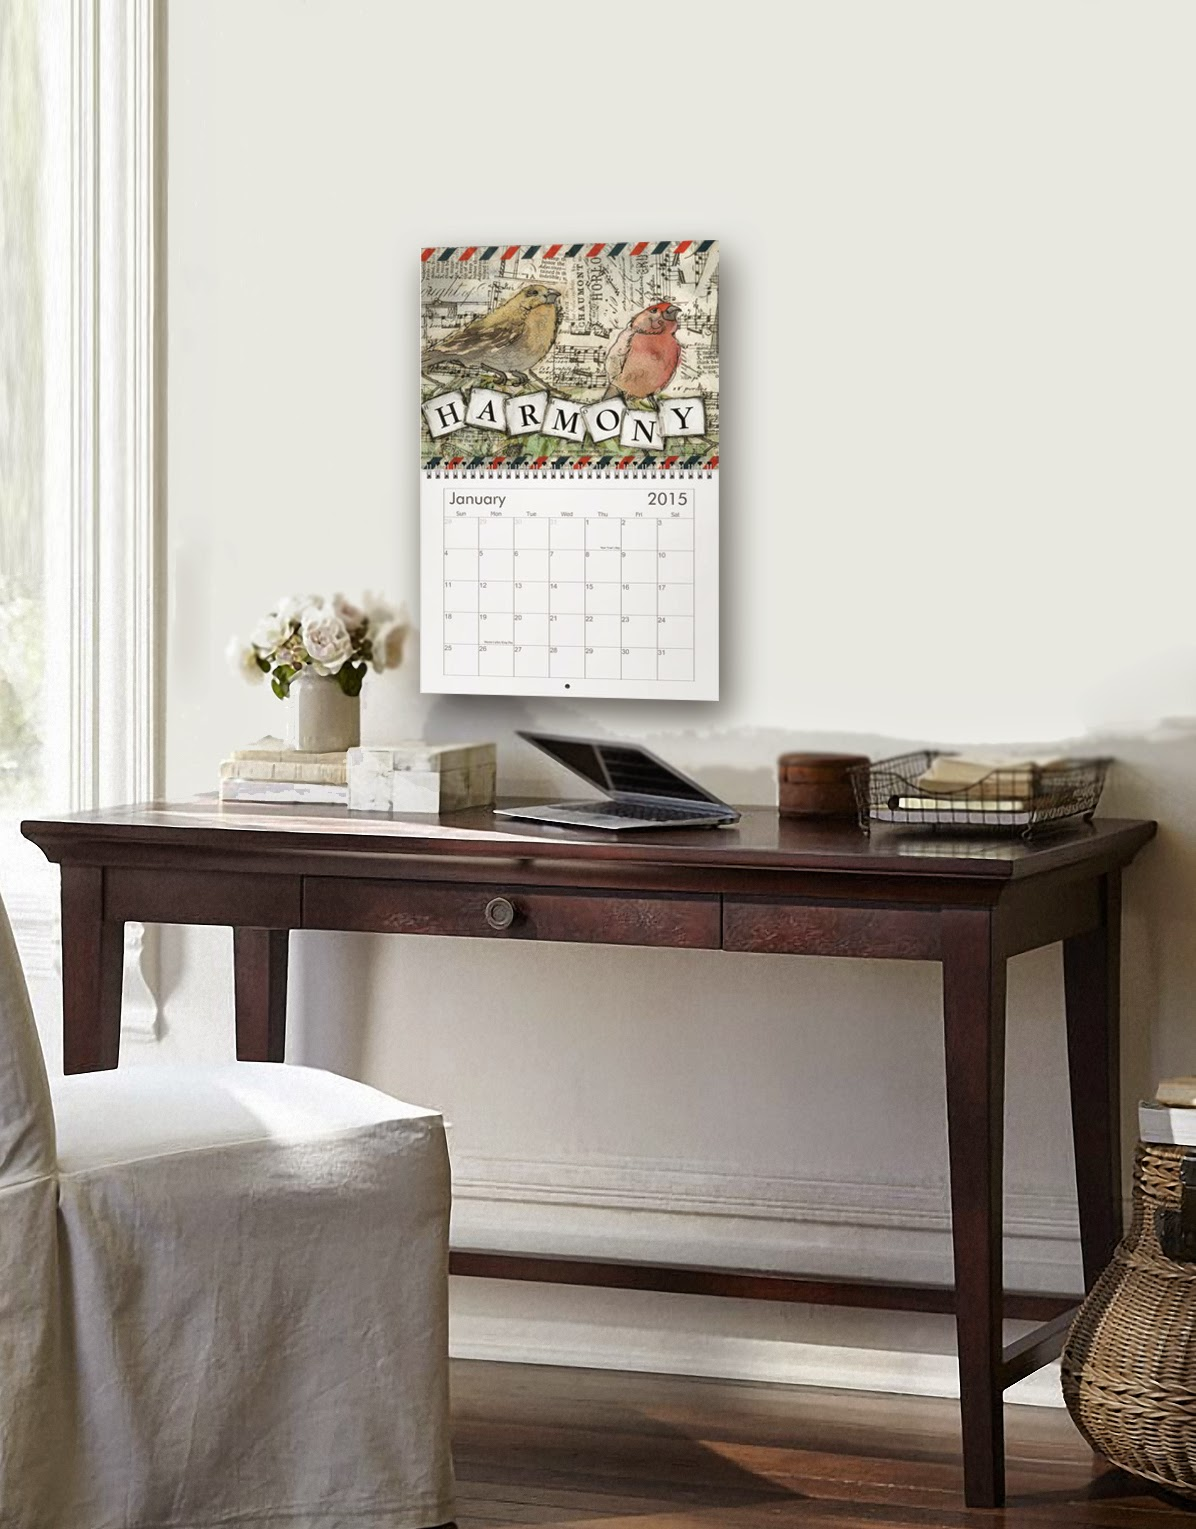 https://www.etsy.com/listing/201755132/wall-calendar-2015-with-inspirational